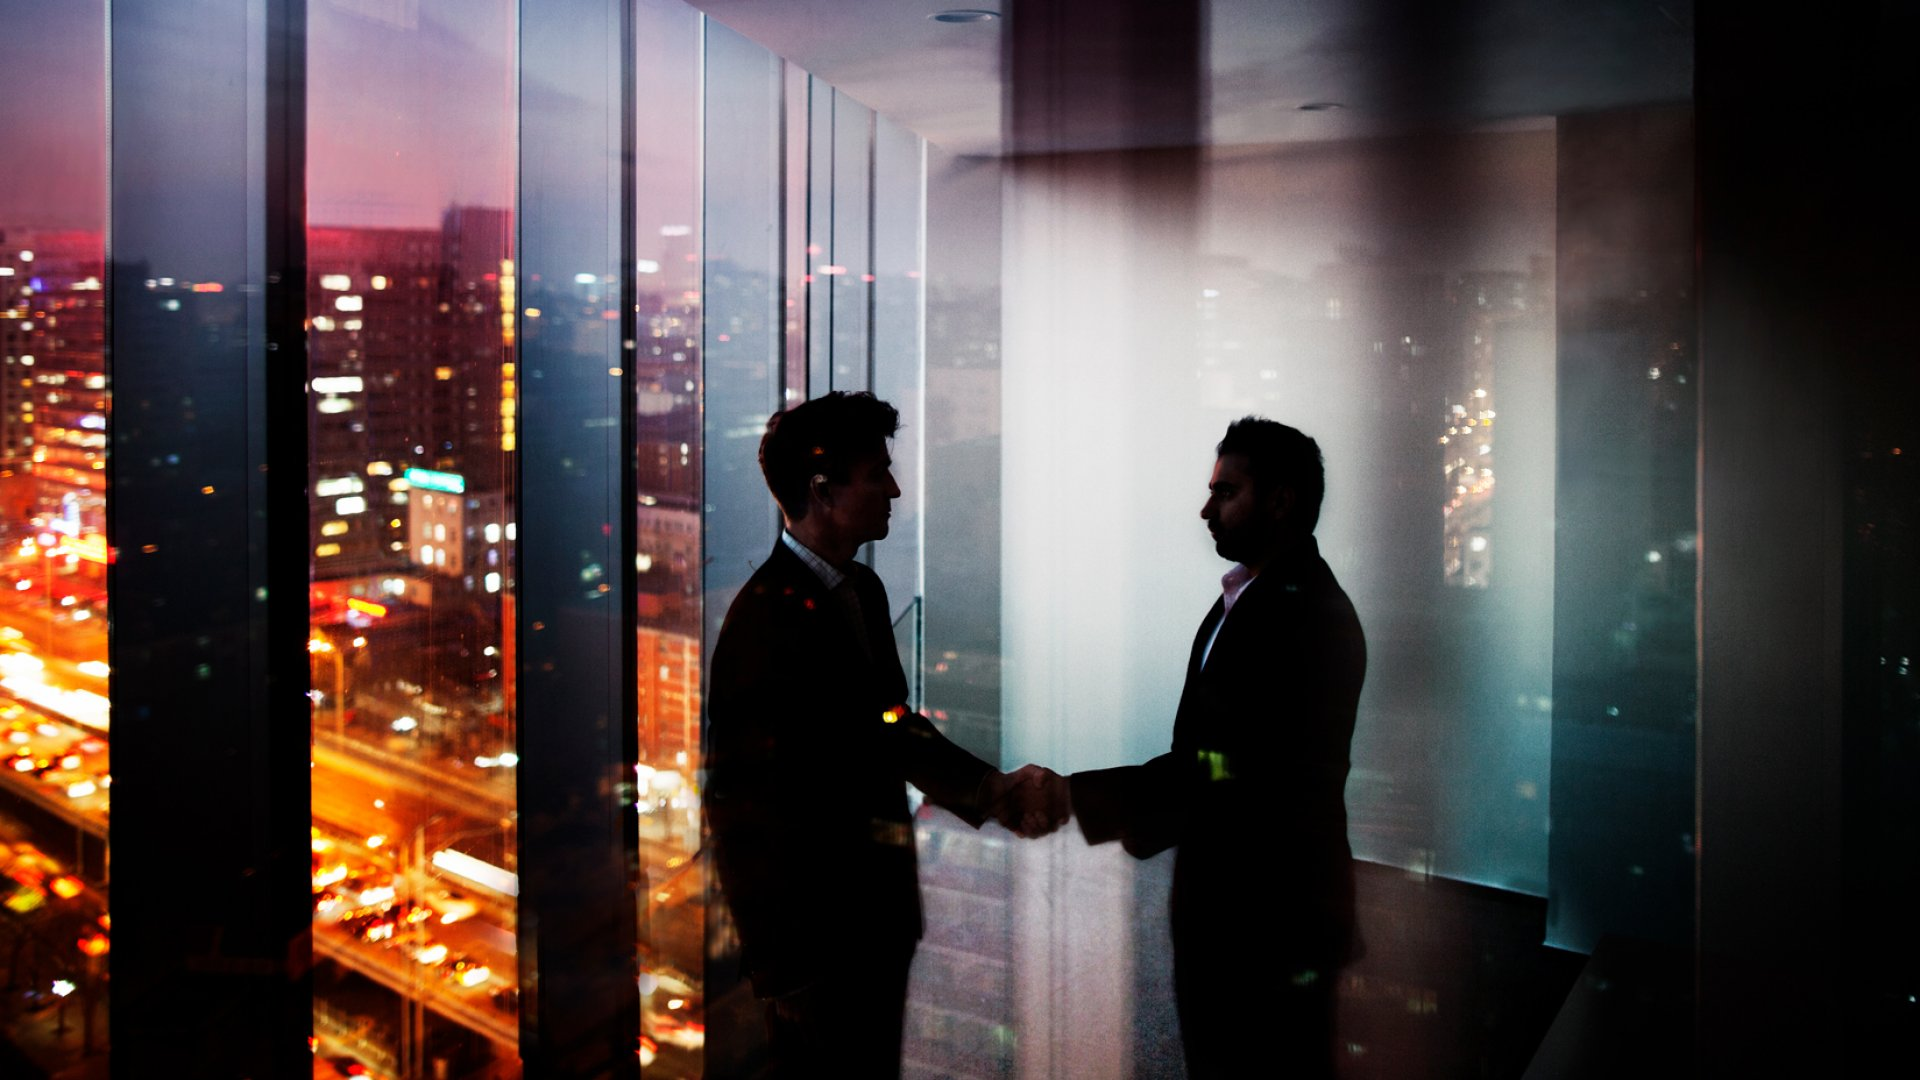 Want to Grow Strong Partnerships? 8 Business Leaders Share Their Best Tips